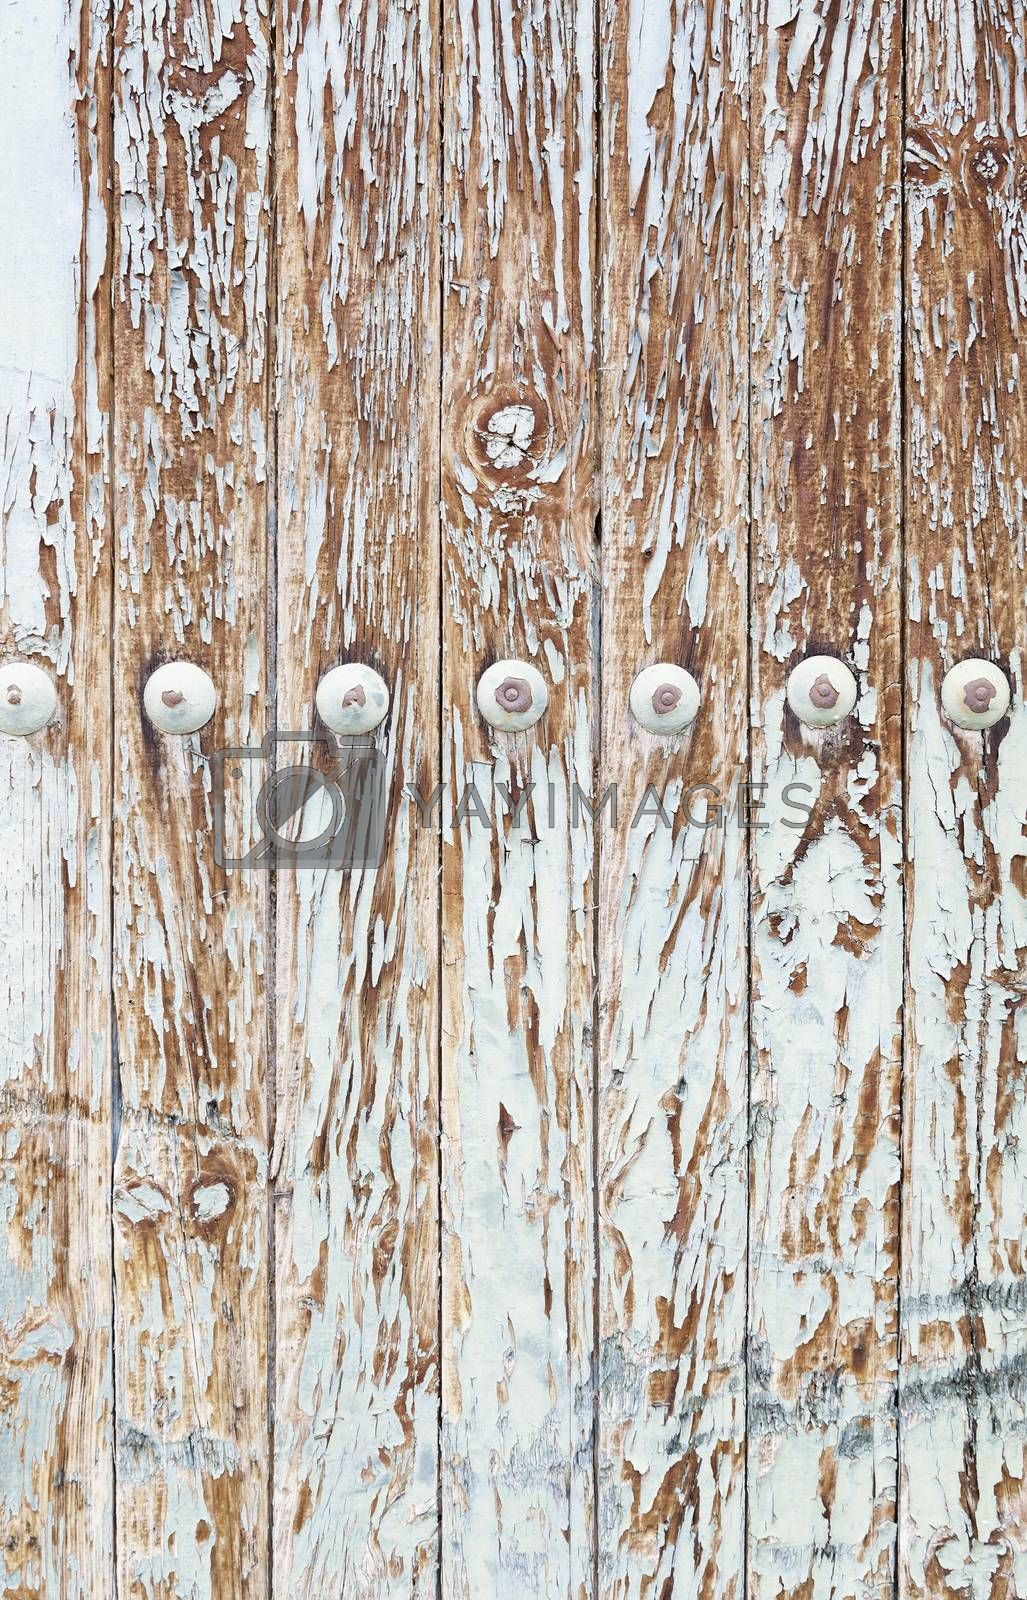 Wooden wall damaged, detail of an old wooden wall coated, decoration and neglect